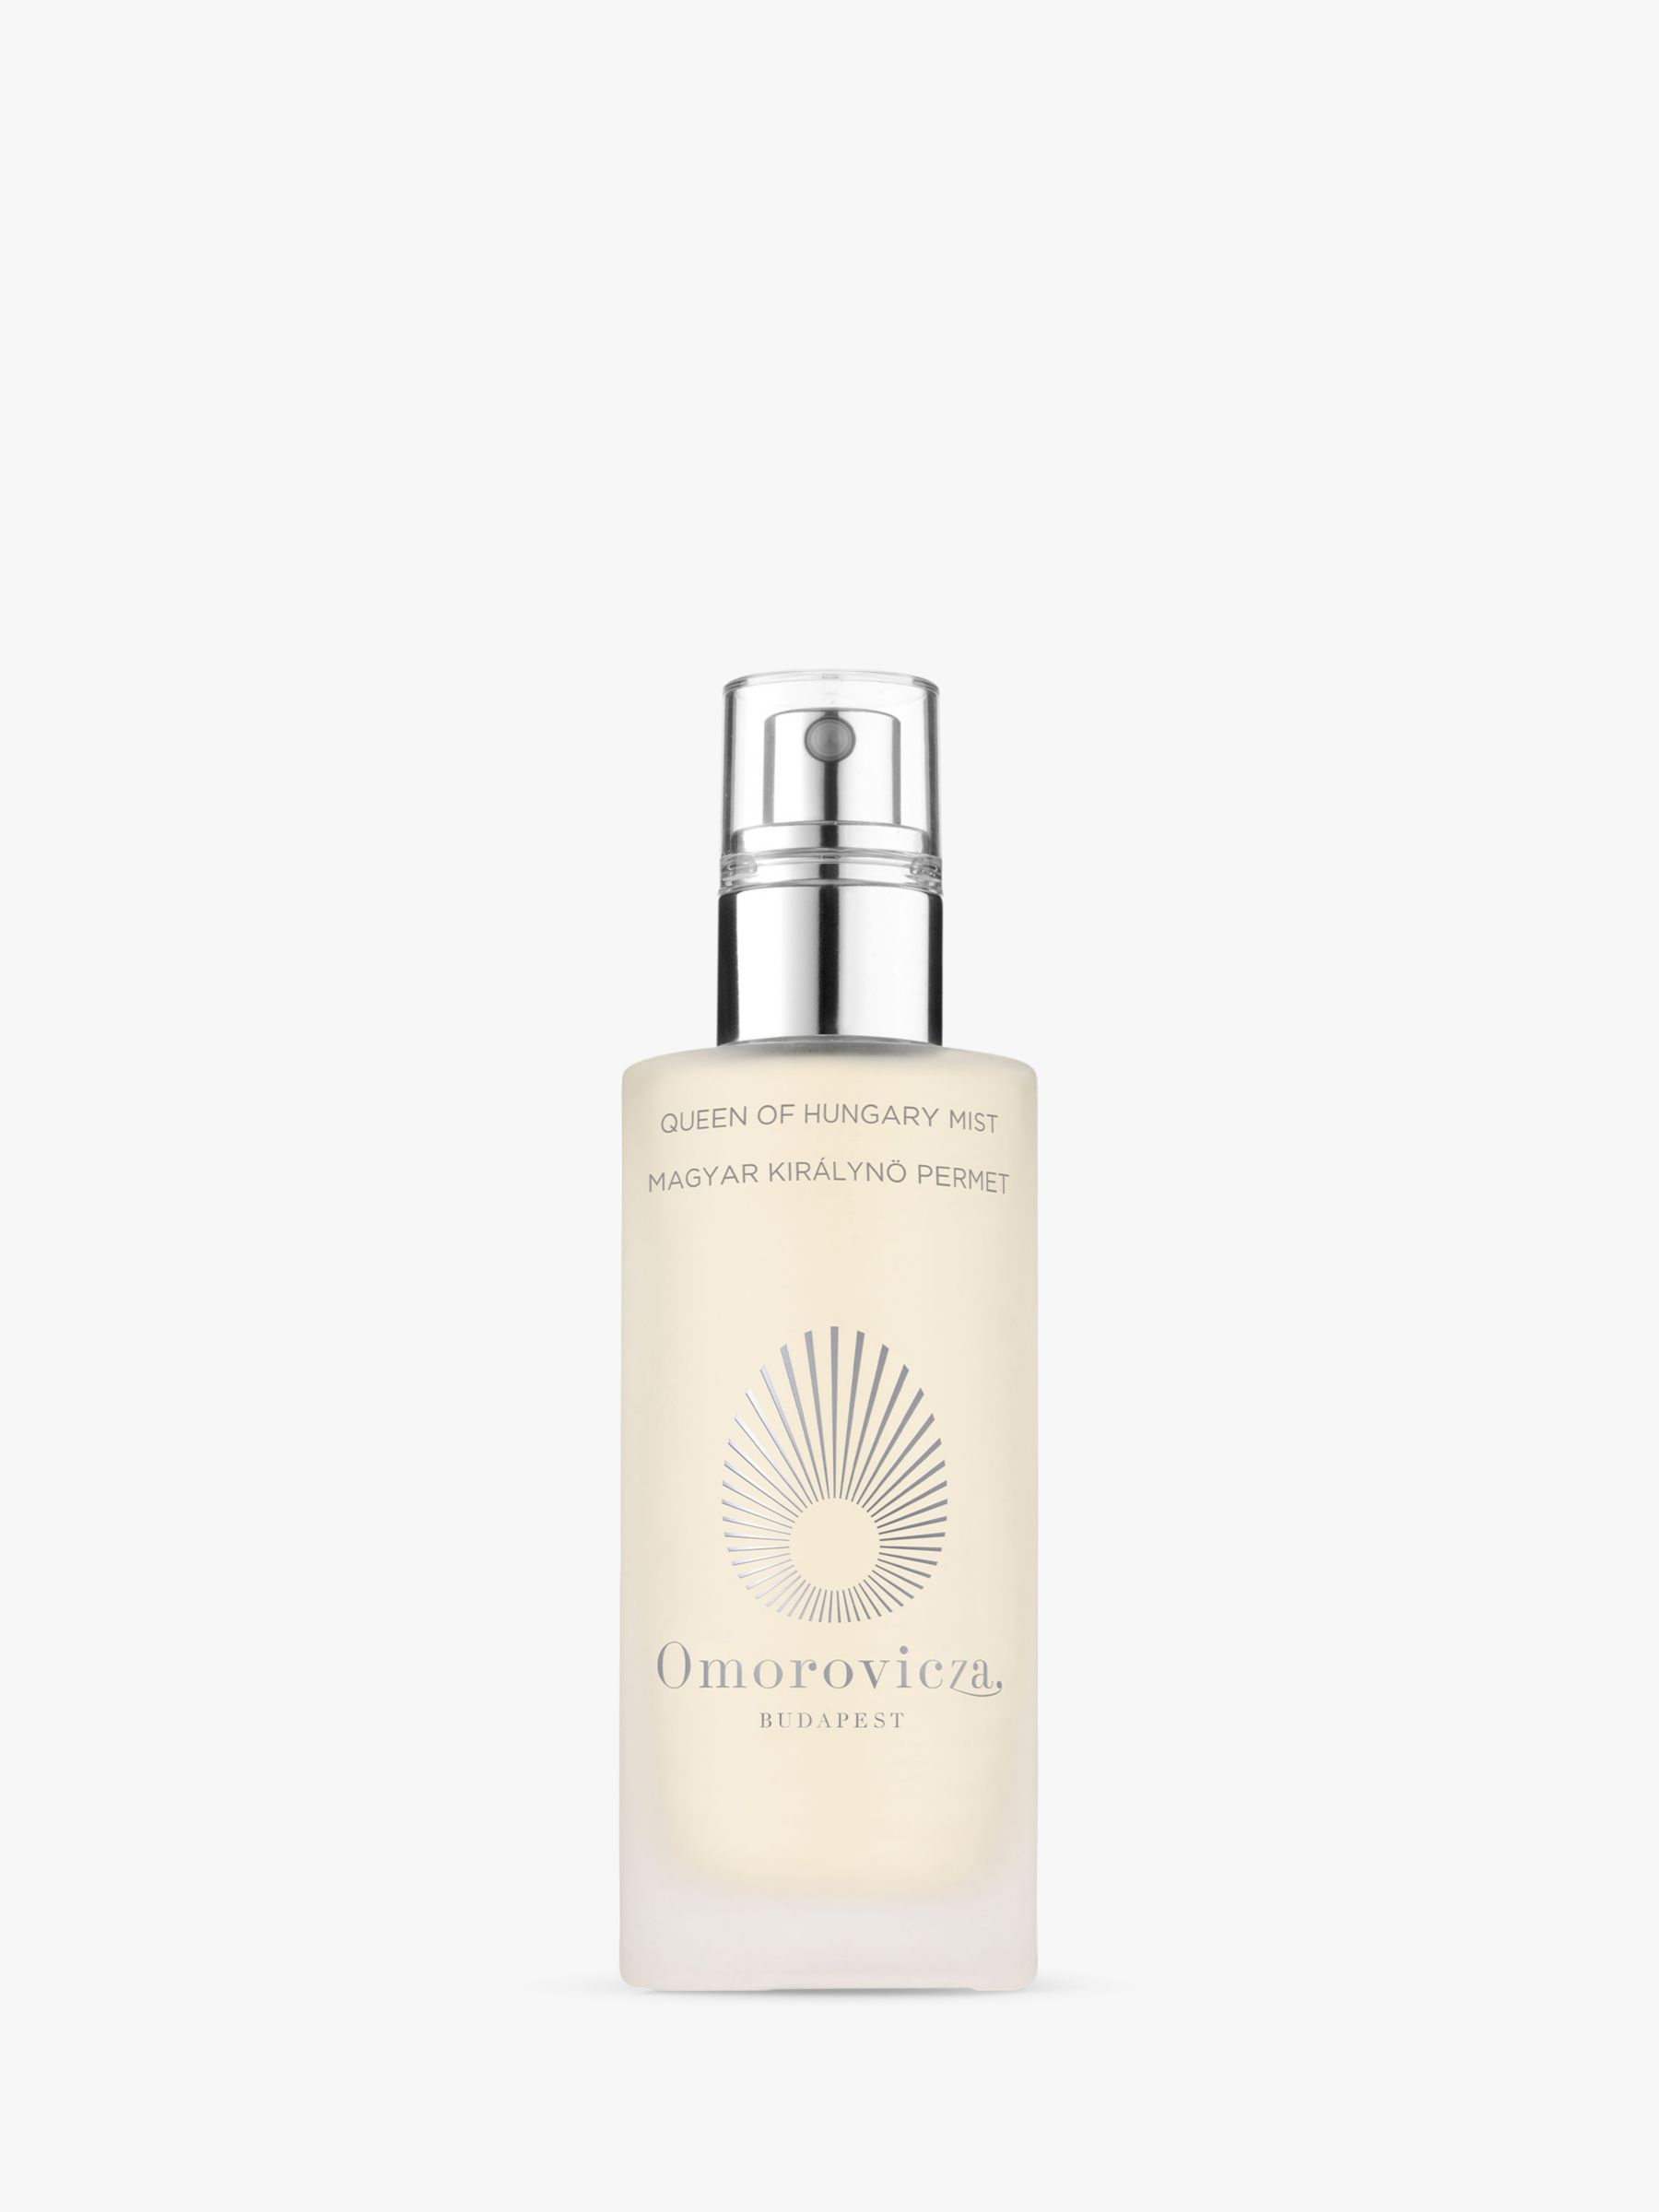 Omorovicza Omorovicza Queen Of Hungary Mist, 100ml